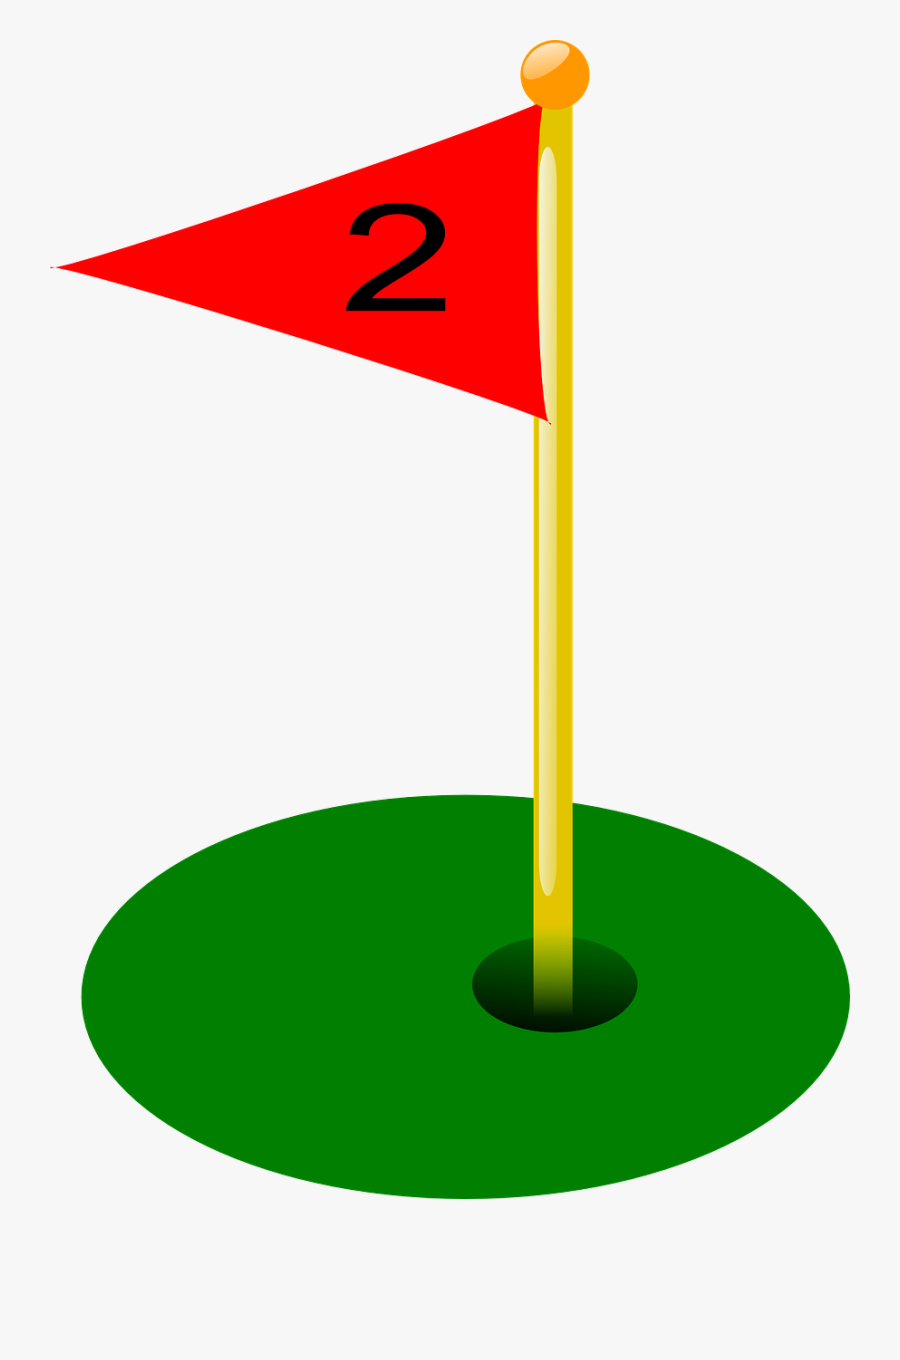 Golf, Hole, Flag, Two, Sport, Game - Draw A Golf Hole, Transparent Clipart